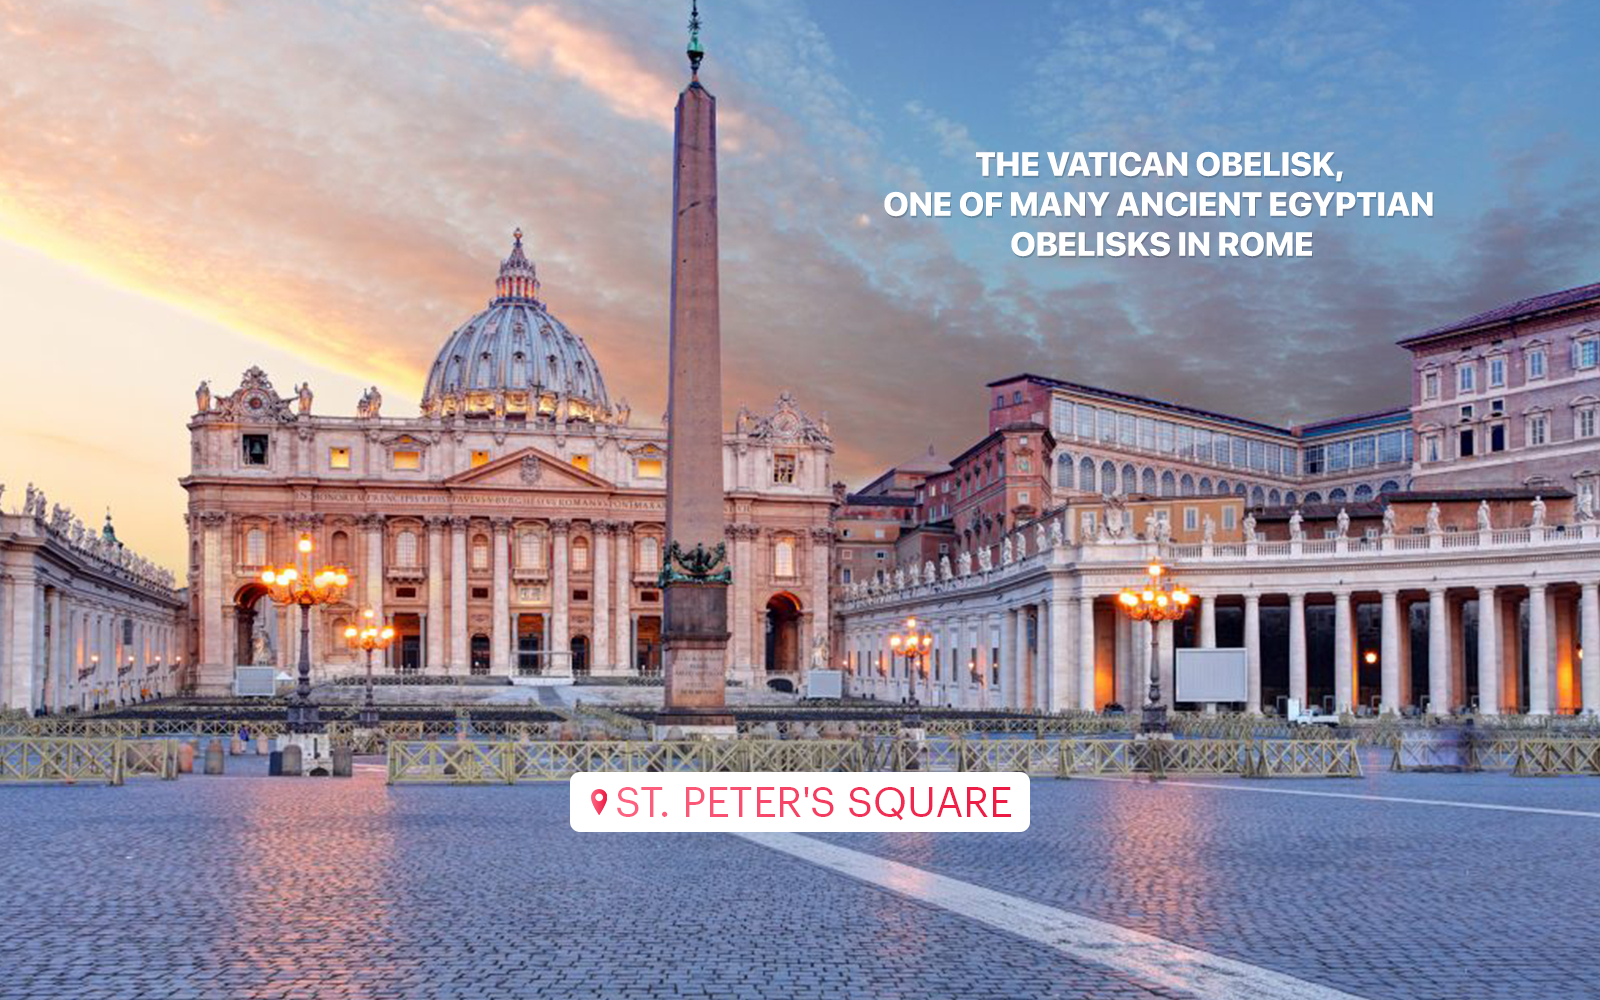 E0f4d94b dc3b 42c0 9cb6 798caa8cb230 7828 rome skip the line st peters basilica with audioguide 03